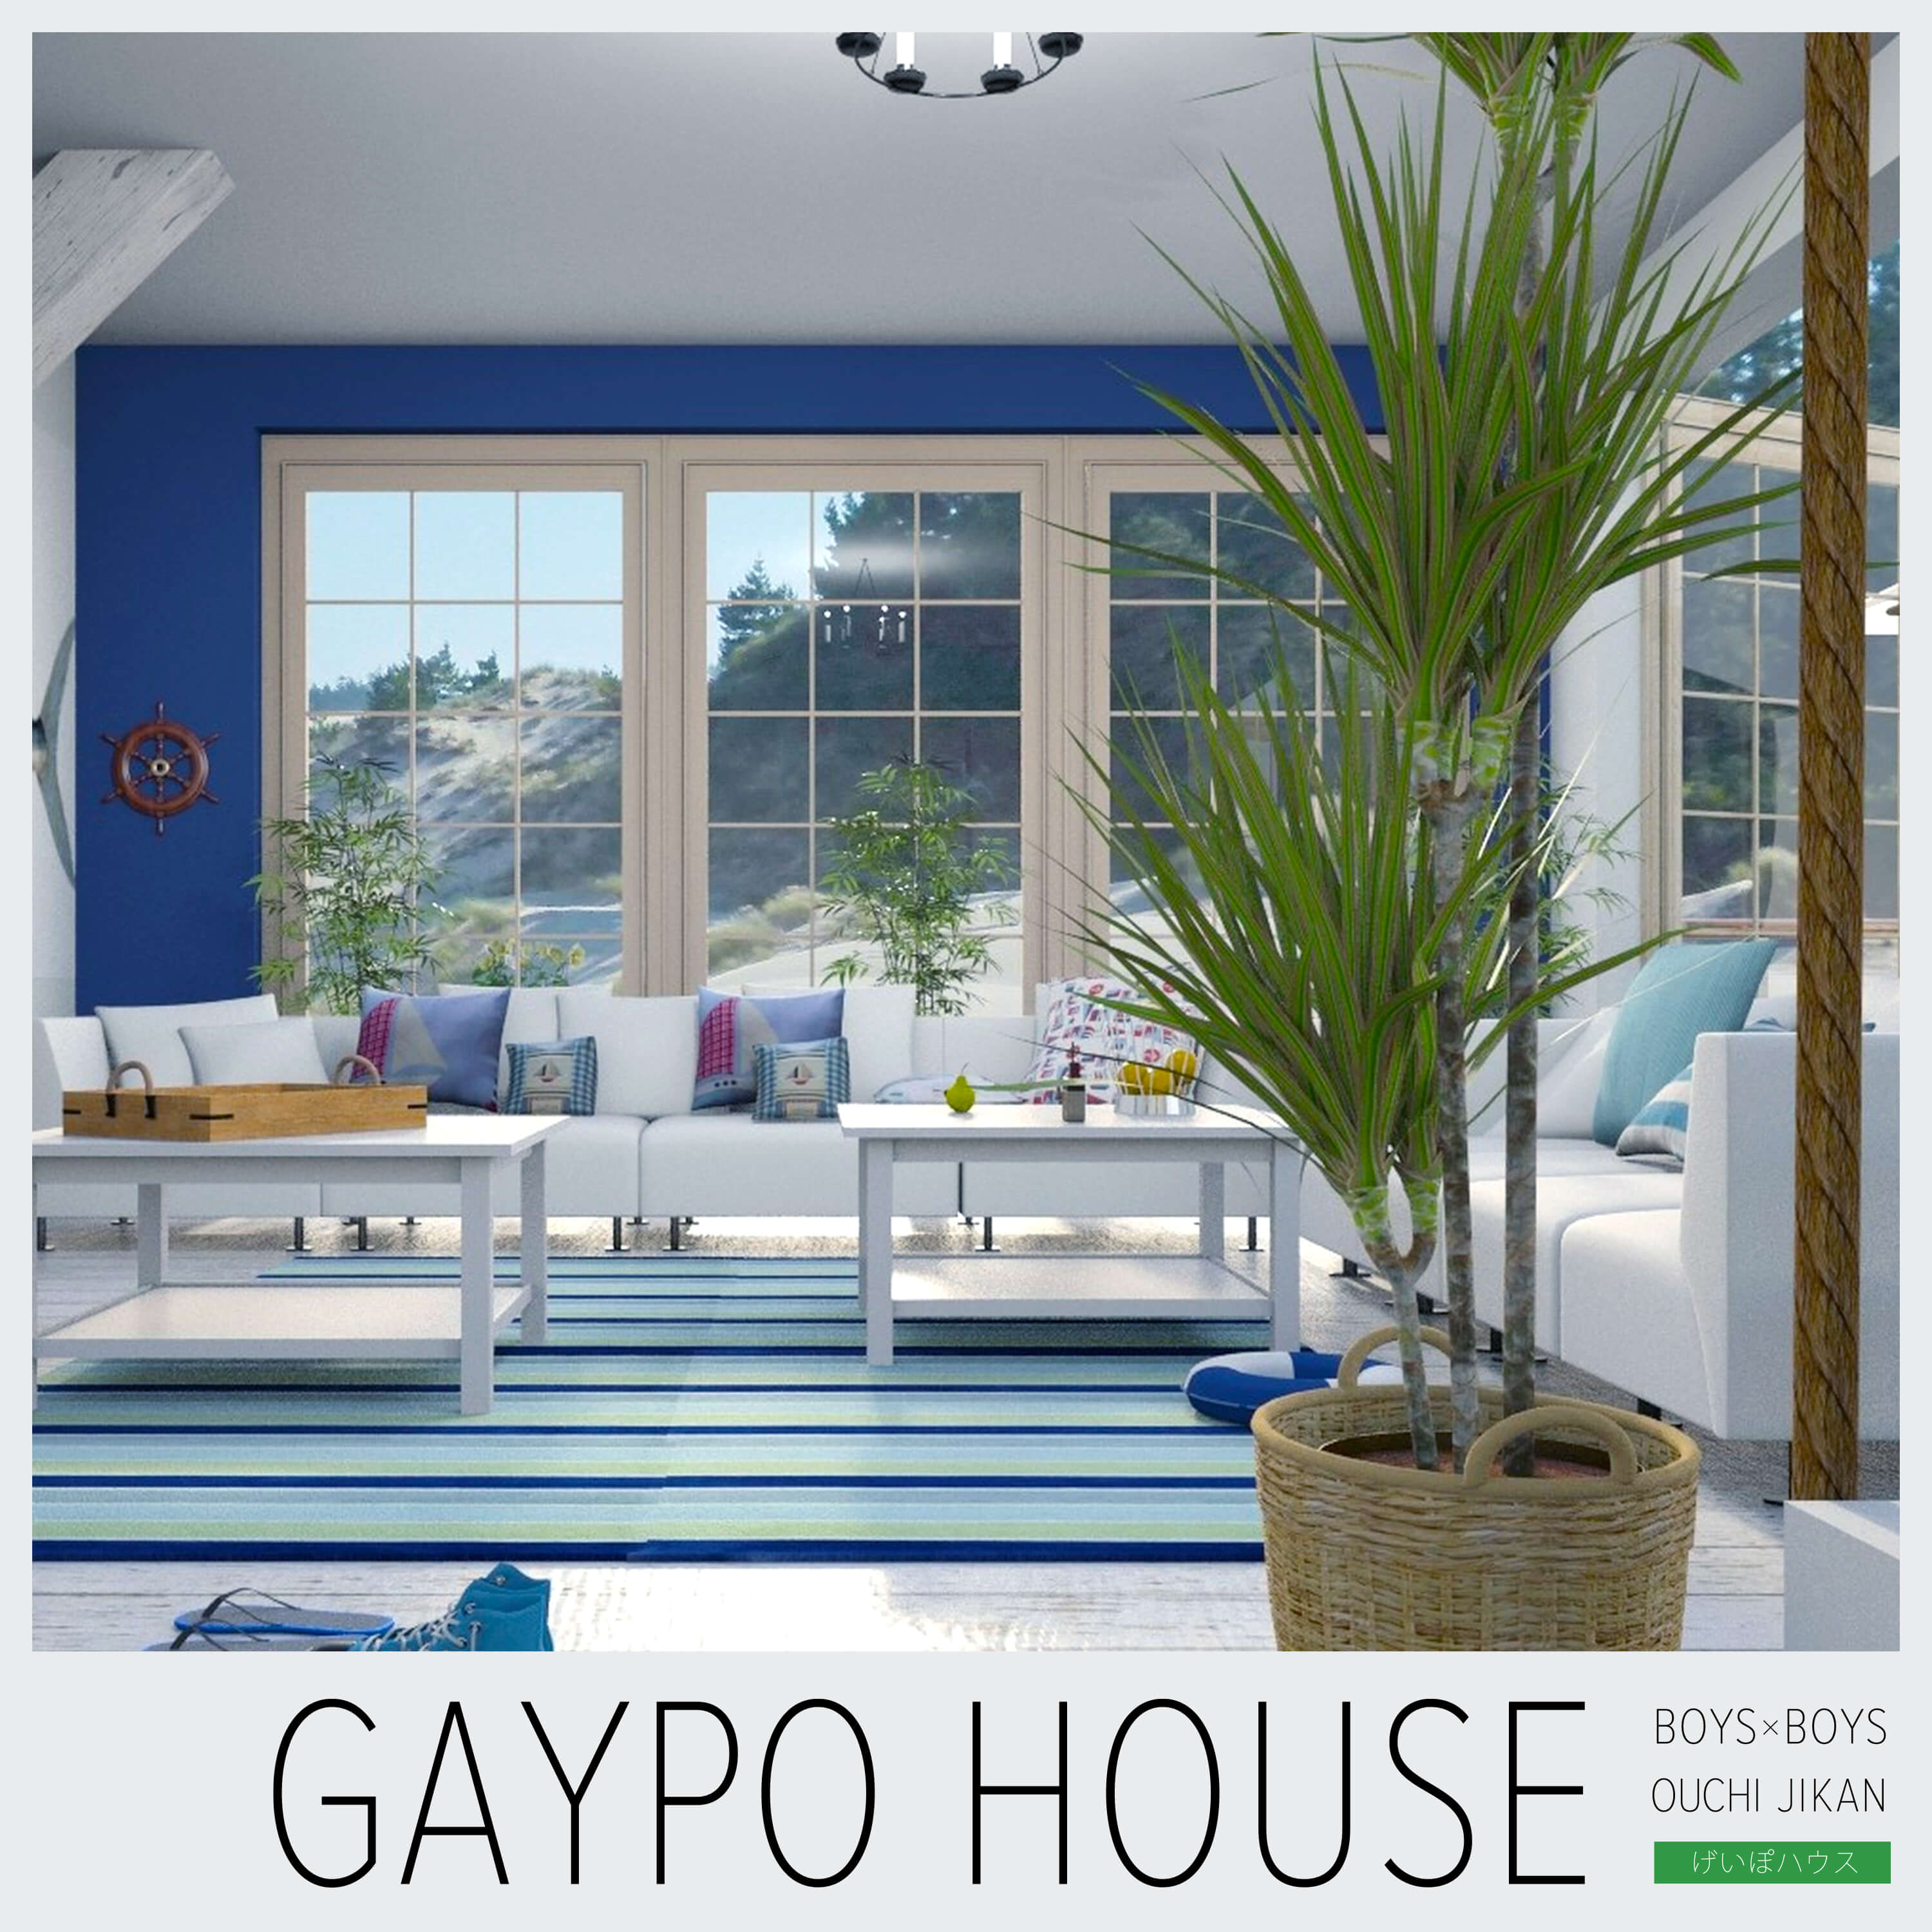 【 #gaypohouse 】第5回目: アソコ